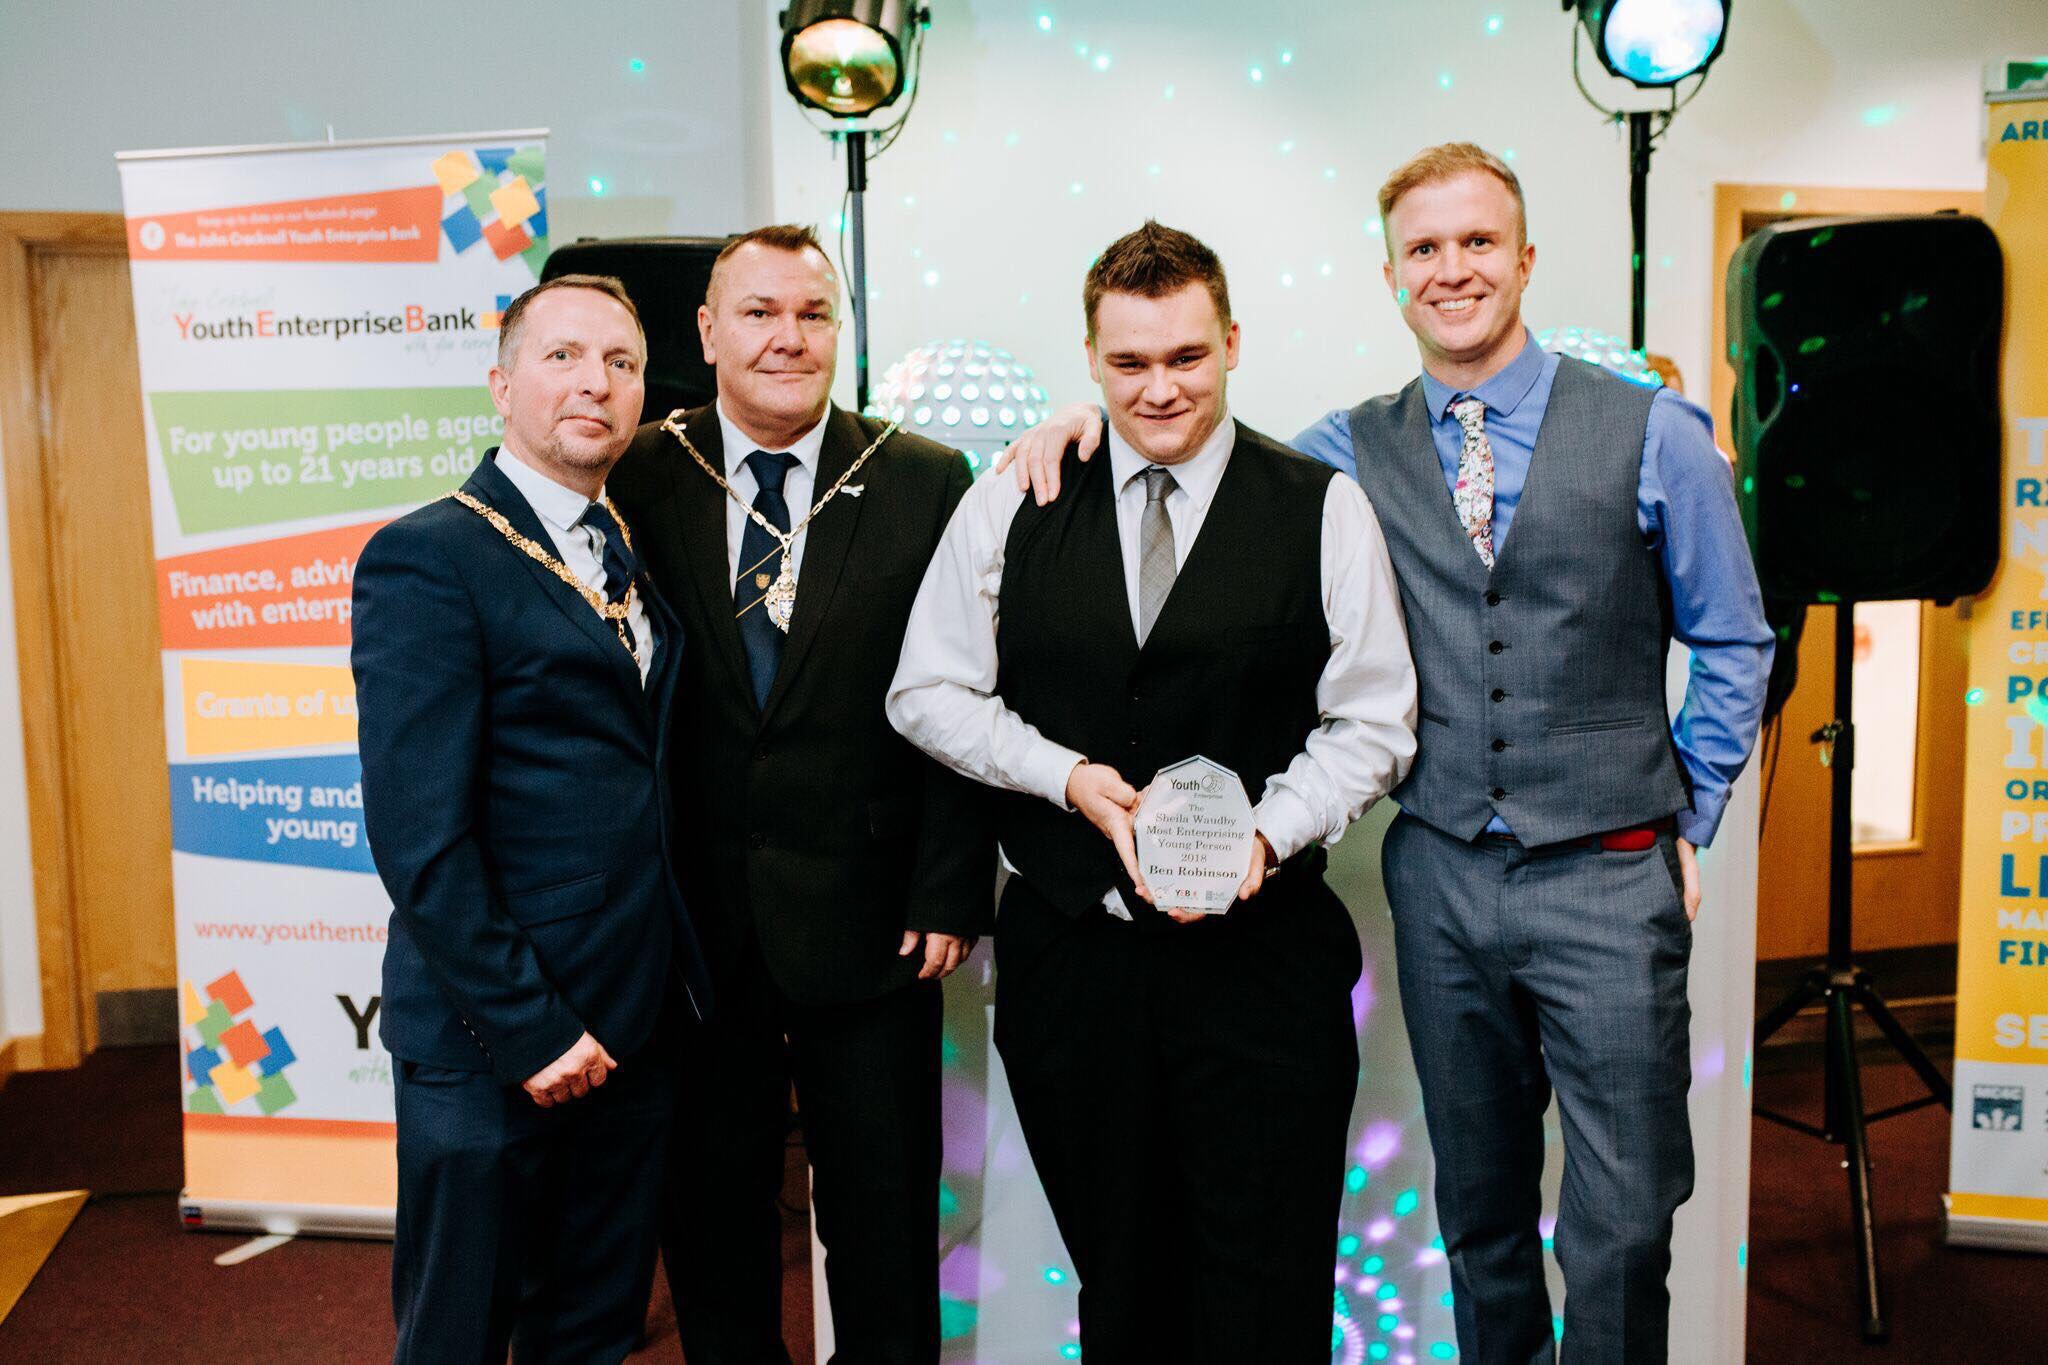 Hull Youth Enterprise Awards 2019 finalists have been revealed